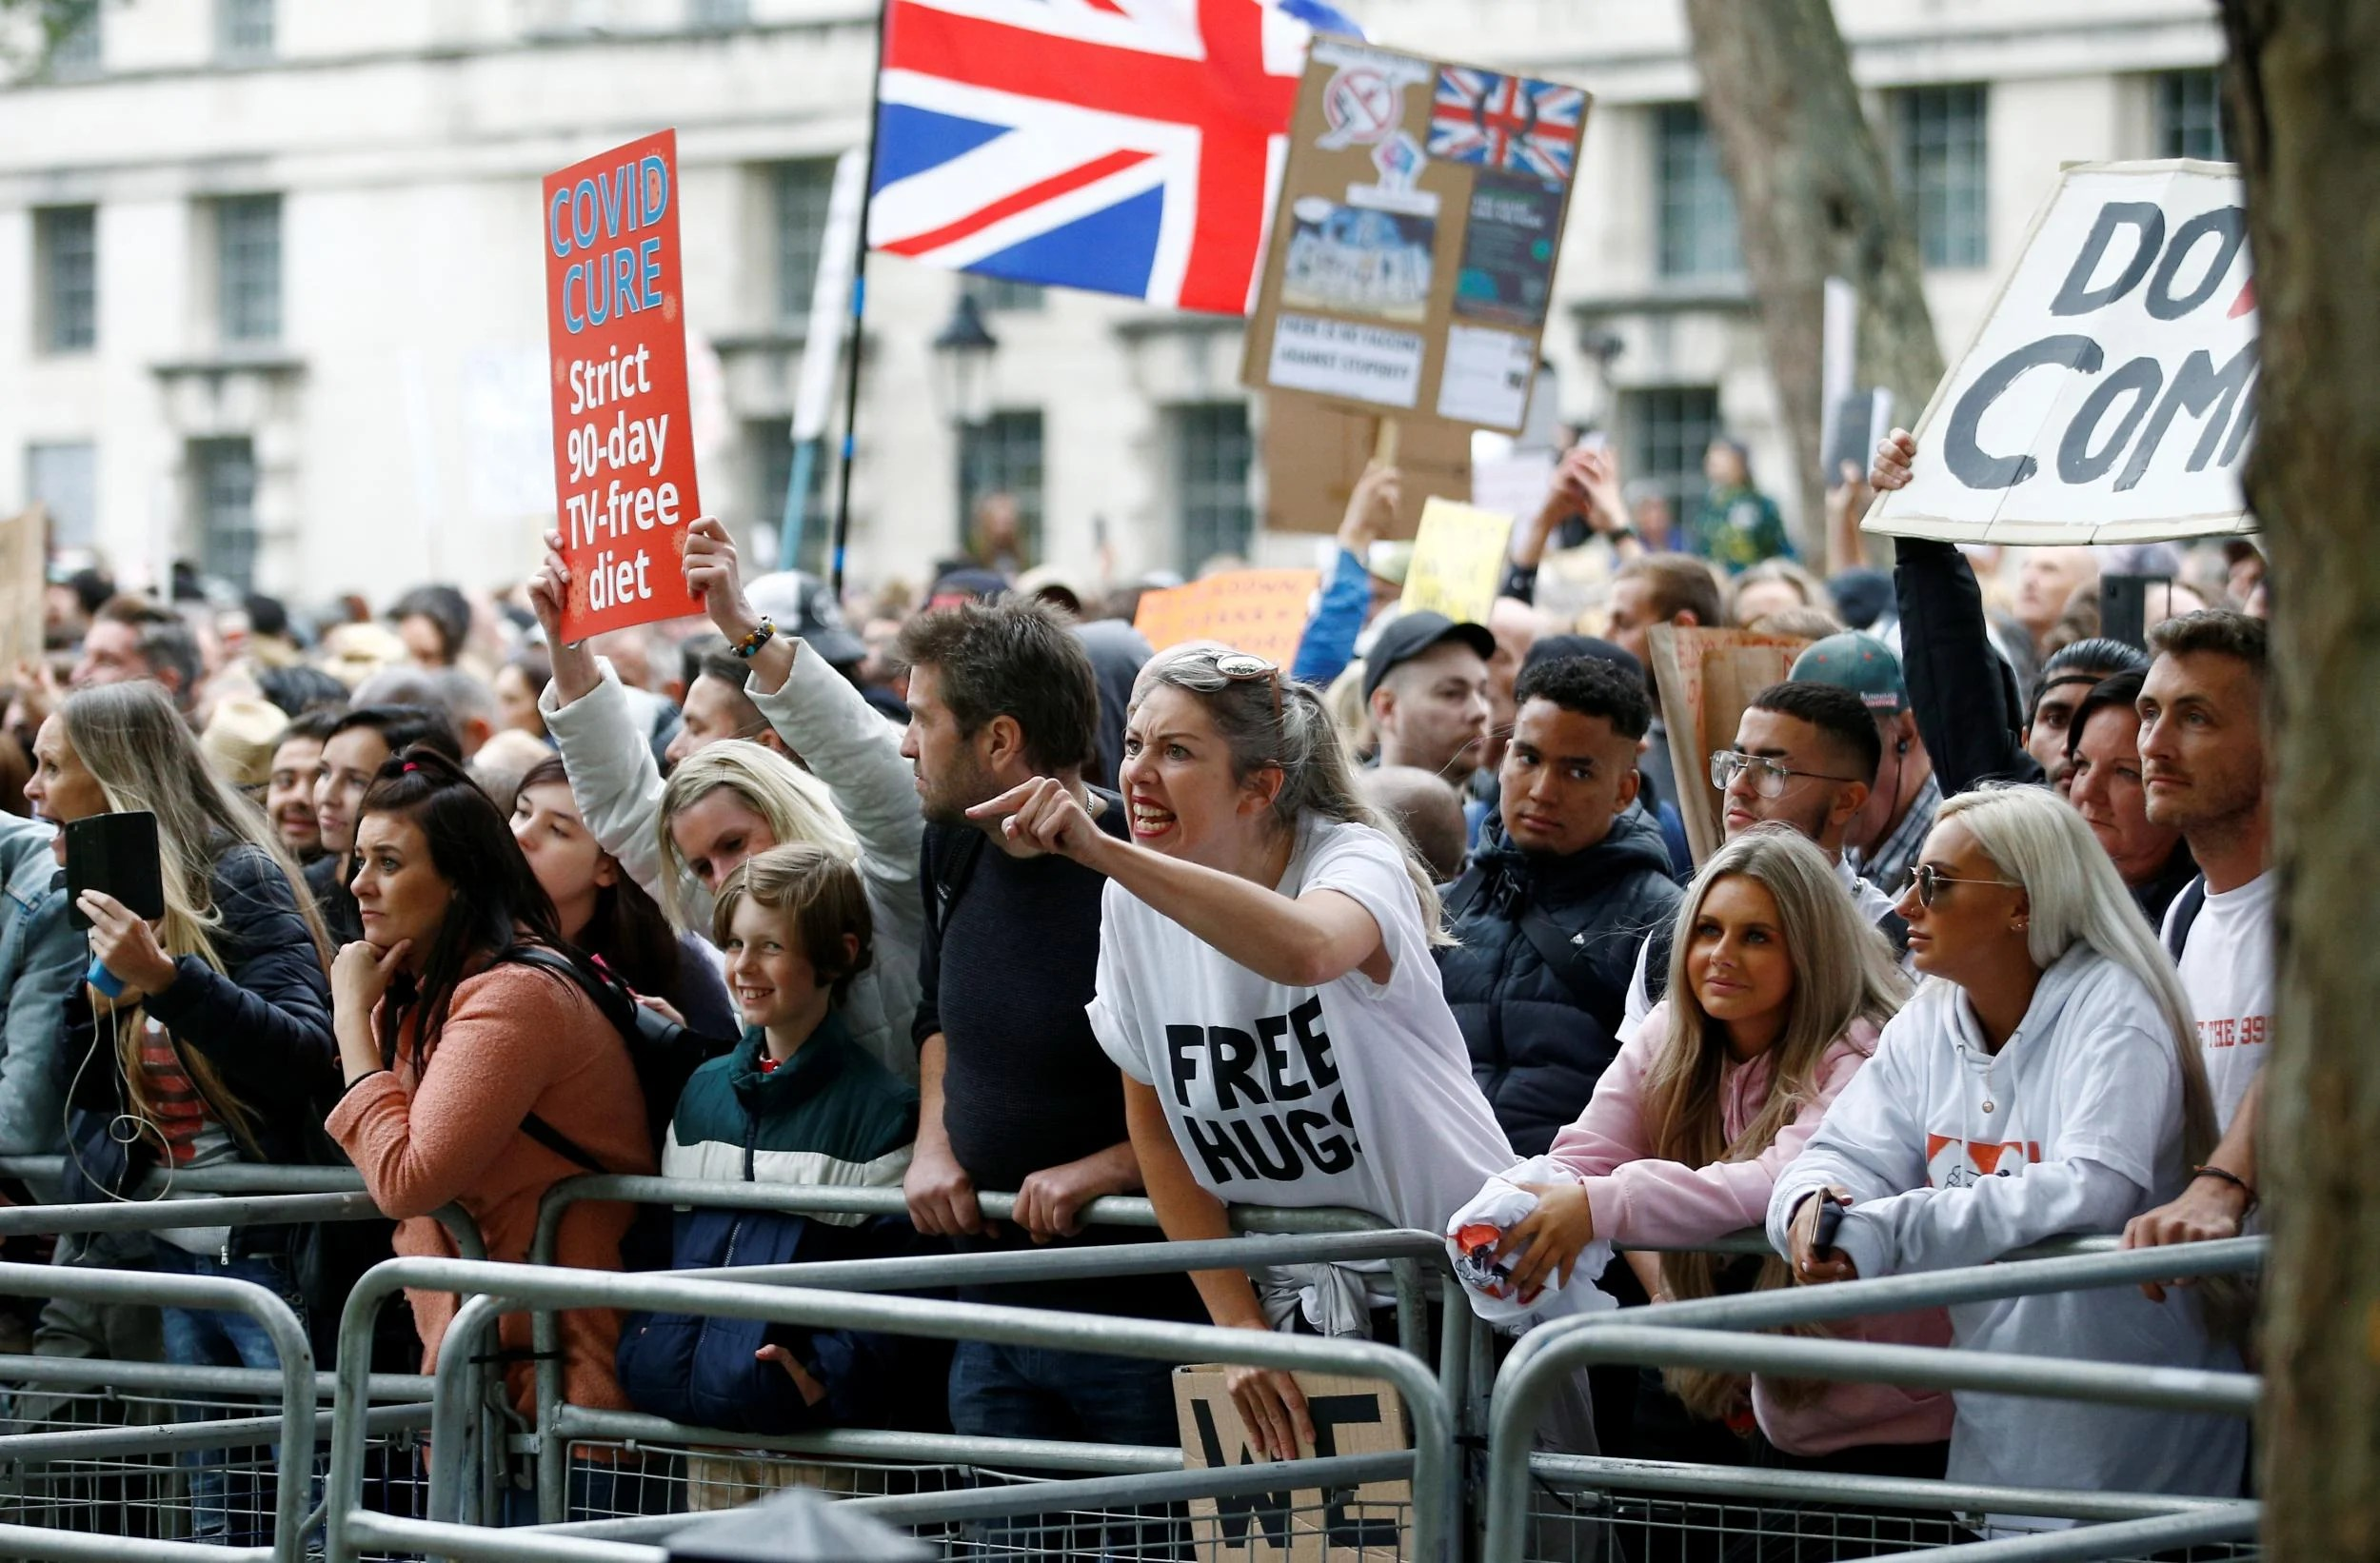 A protester reacts as she demonstrates against the lockdown and use of face masks, amid the coronavirus disease outbreak, outside Downing Street in London